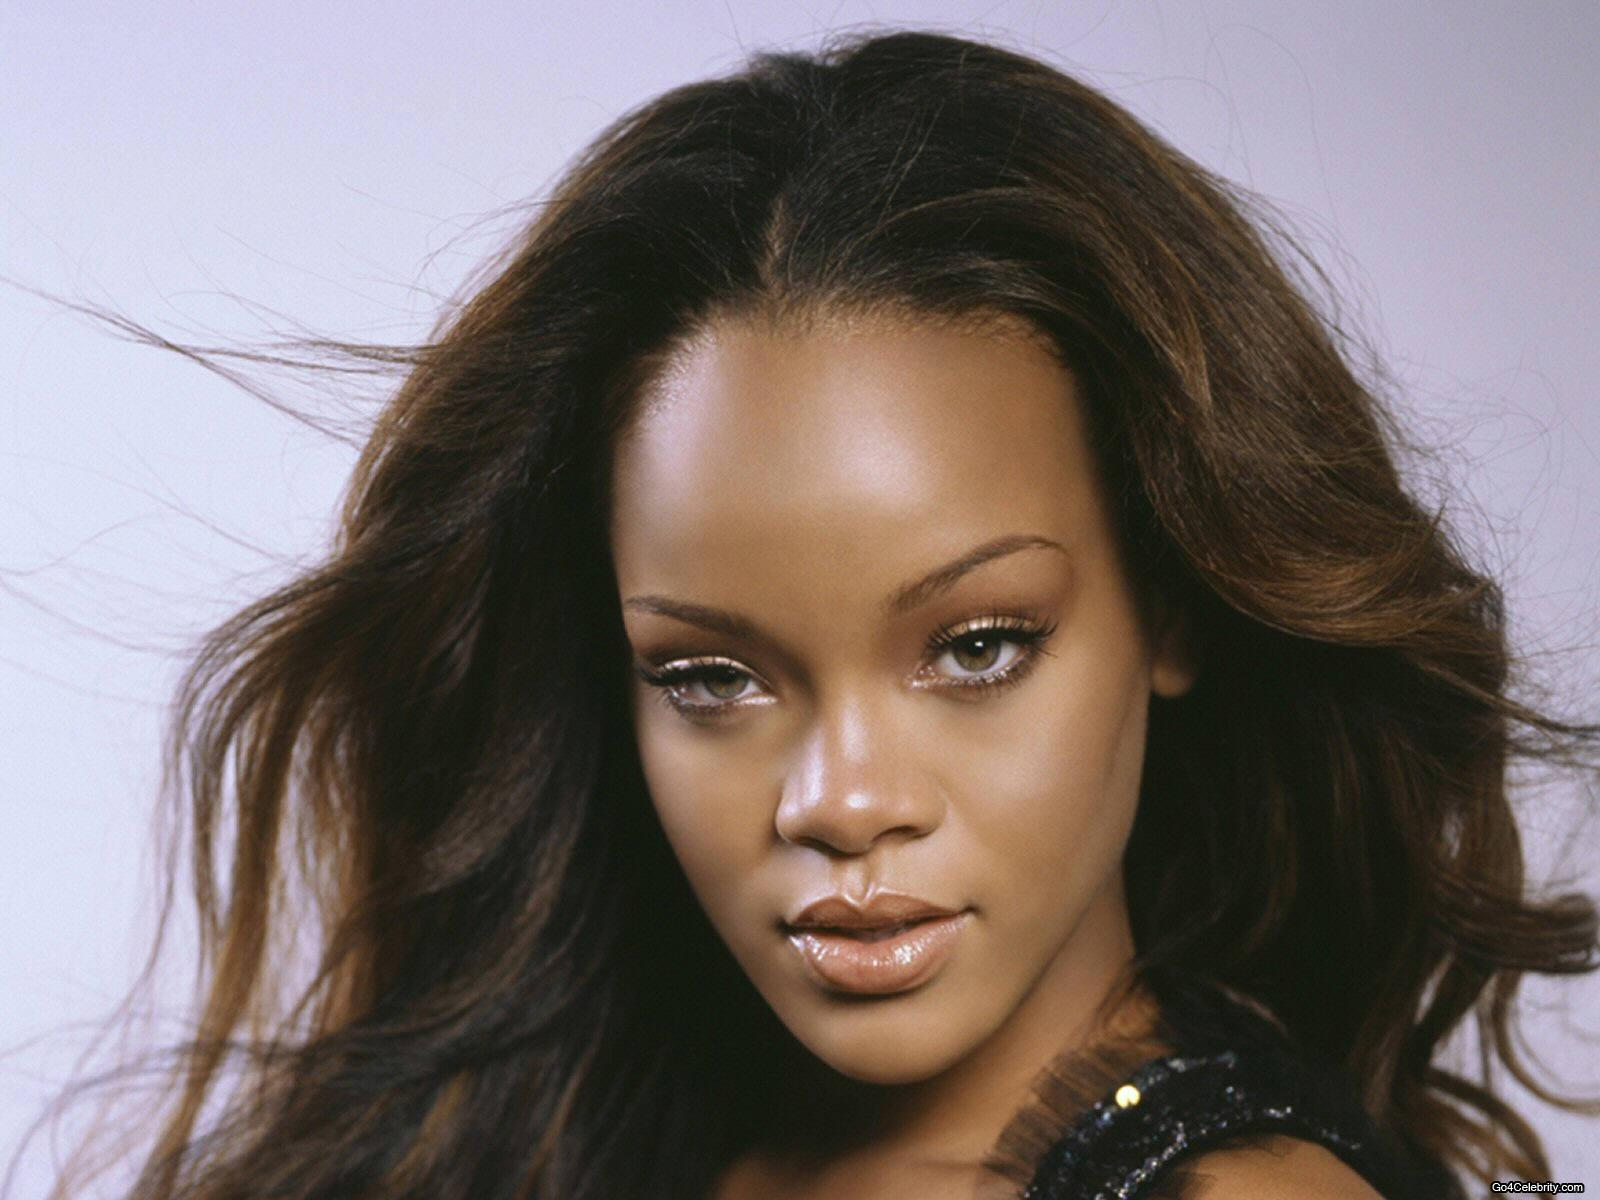 Rihanna images Rihanna HD wallpaper and background photos ... Rihanna